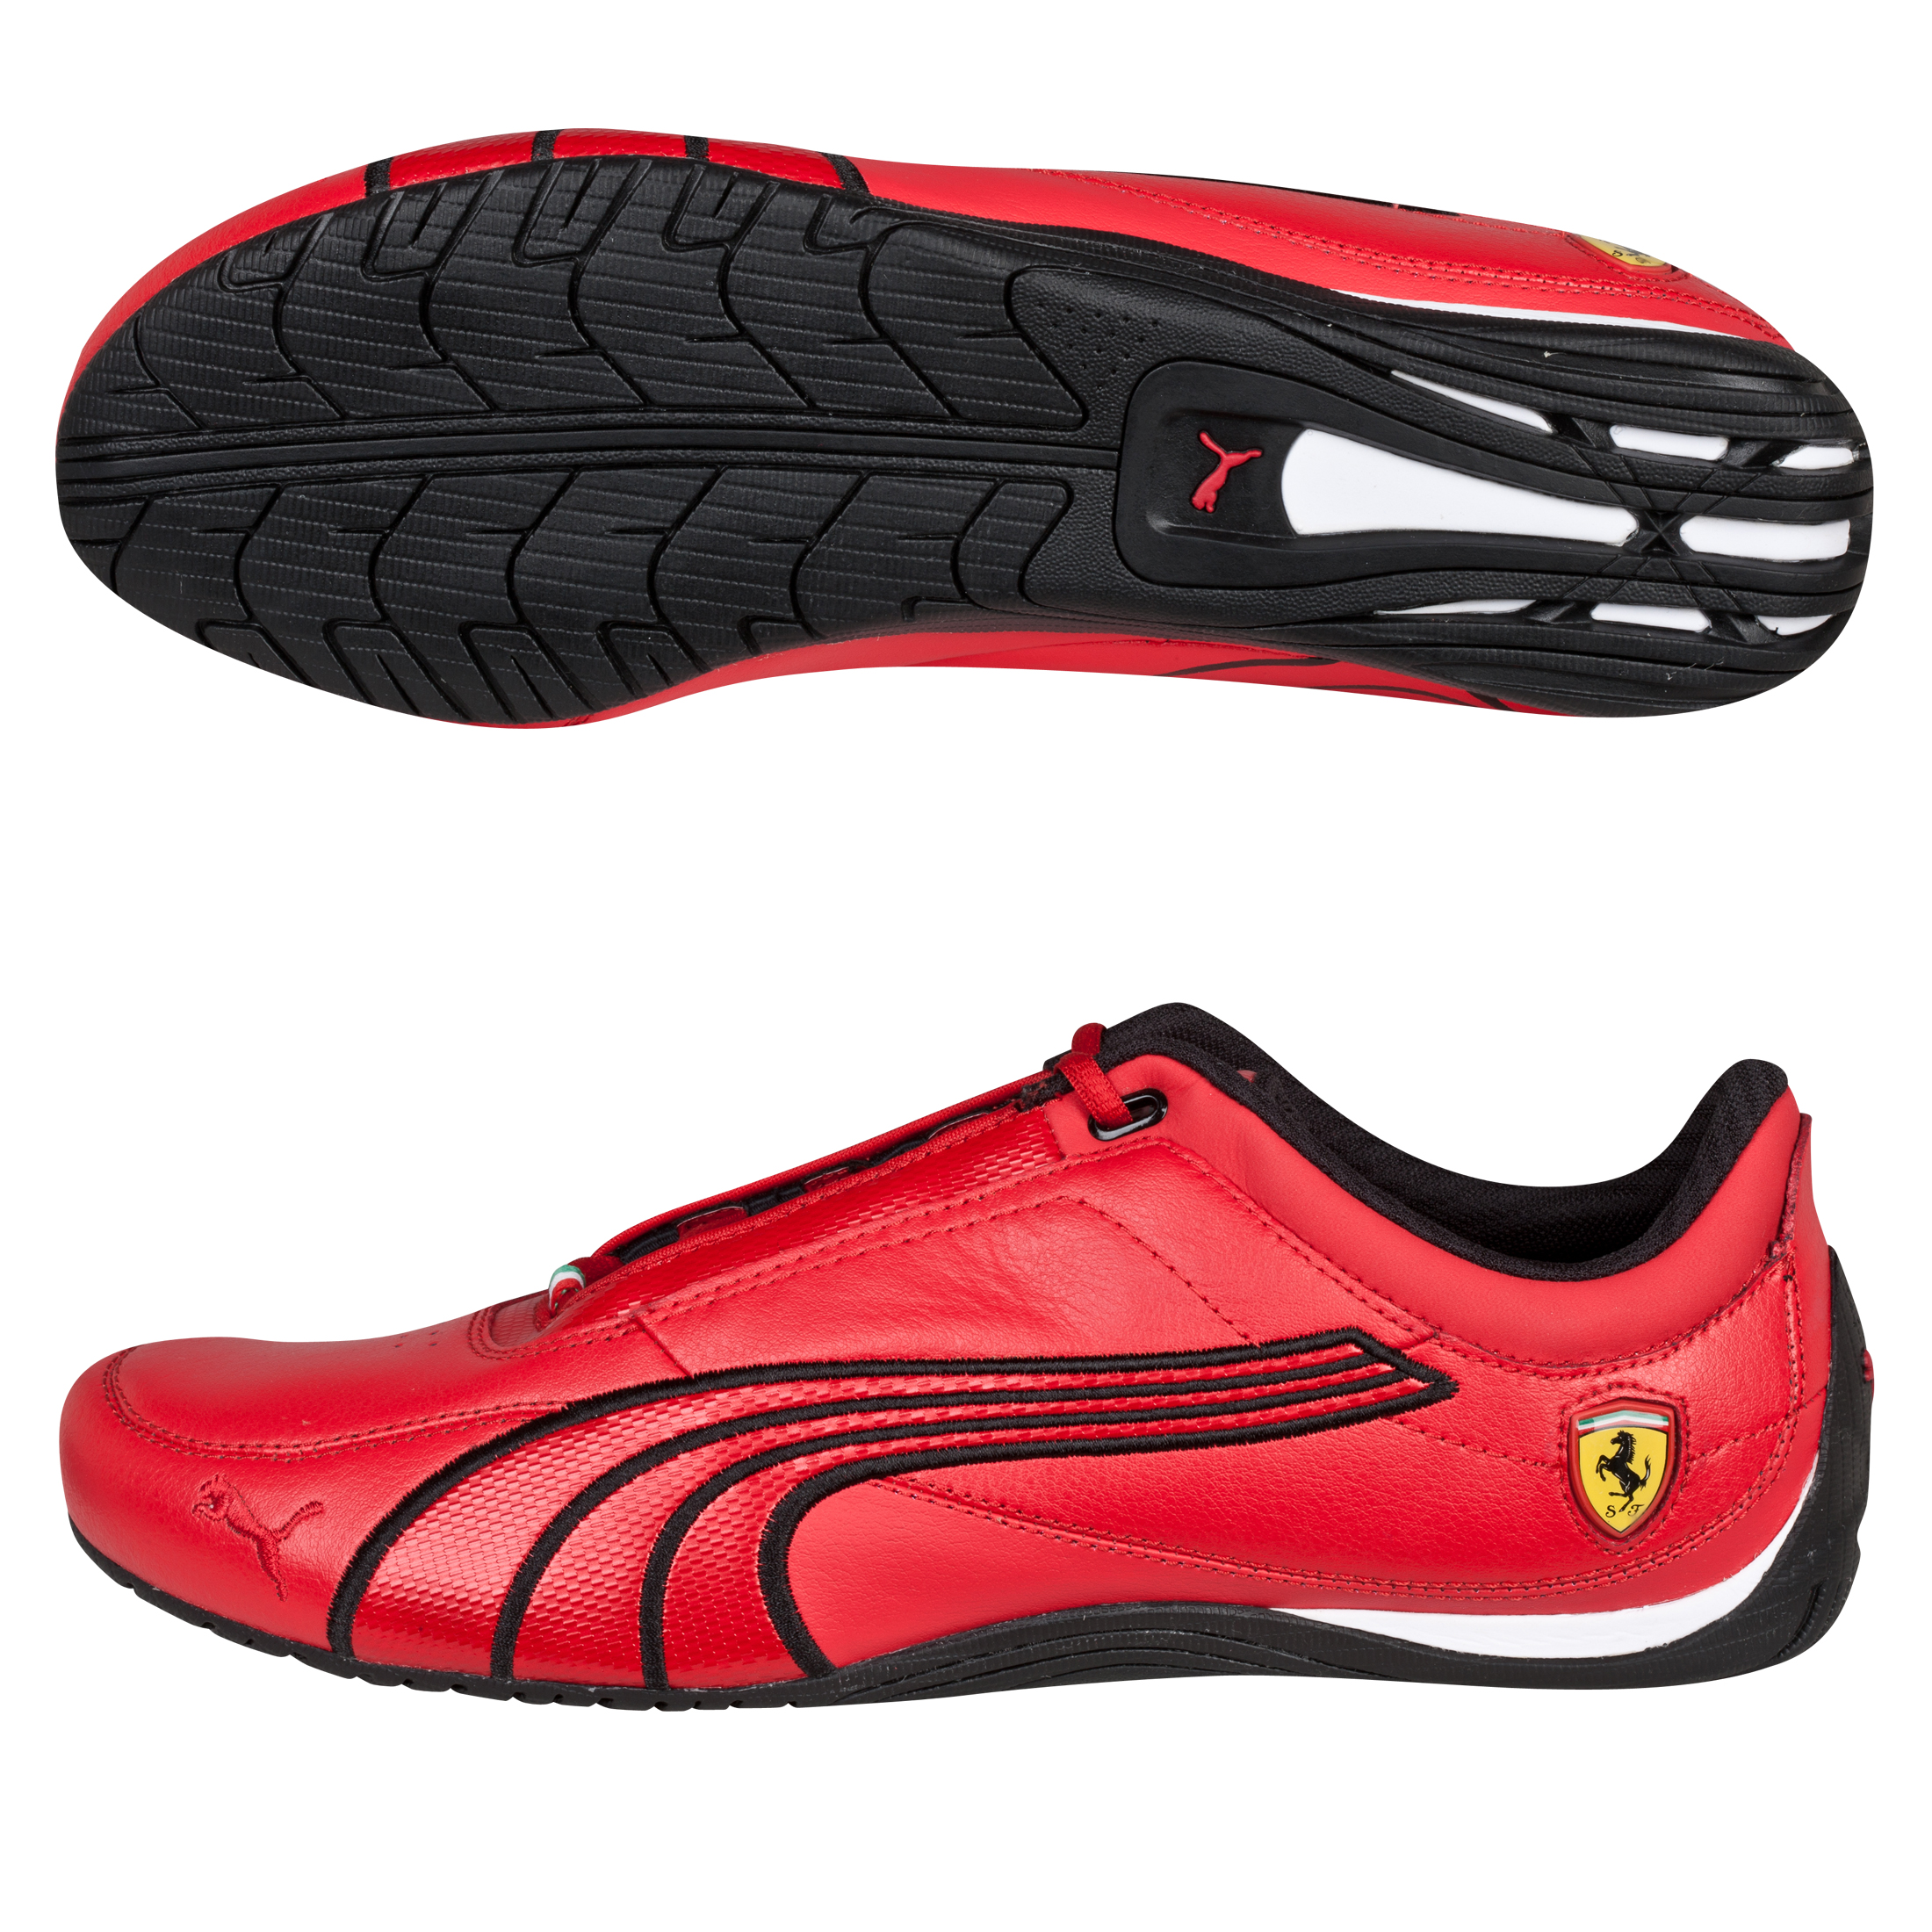 Scuderia Ferrari Drift Cat 4 Trainers  - Rosso Corsa/ Rosso Corsa/Black